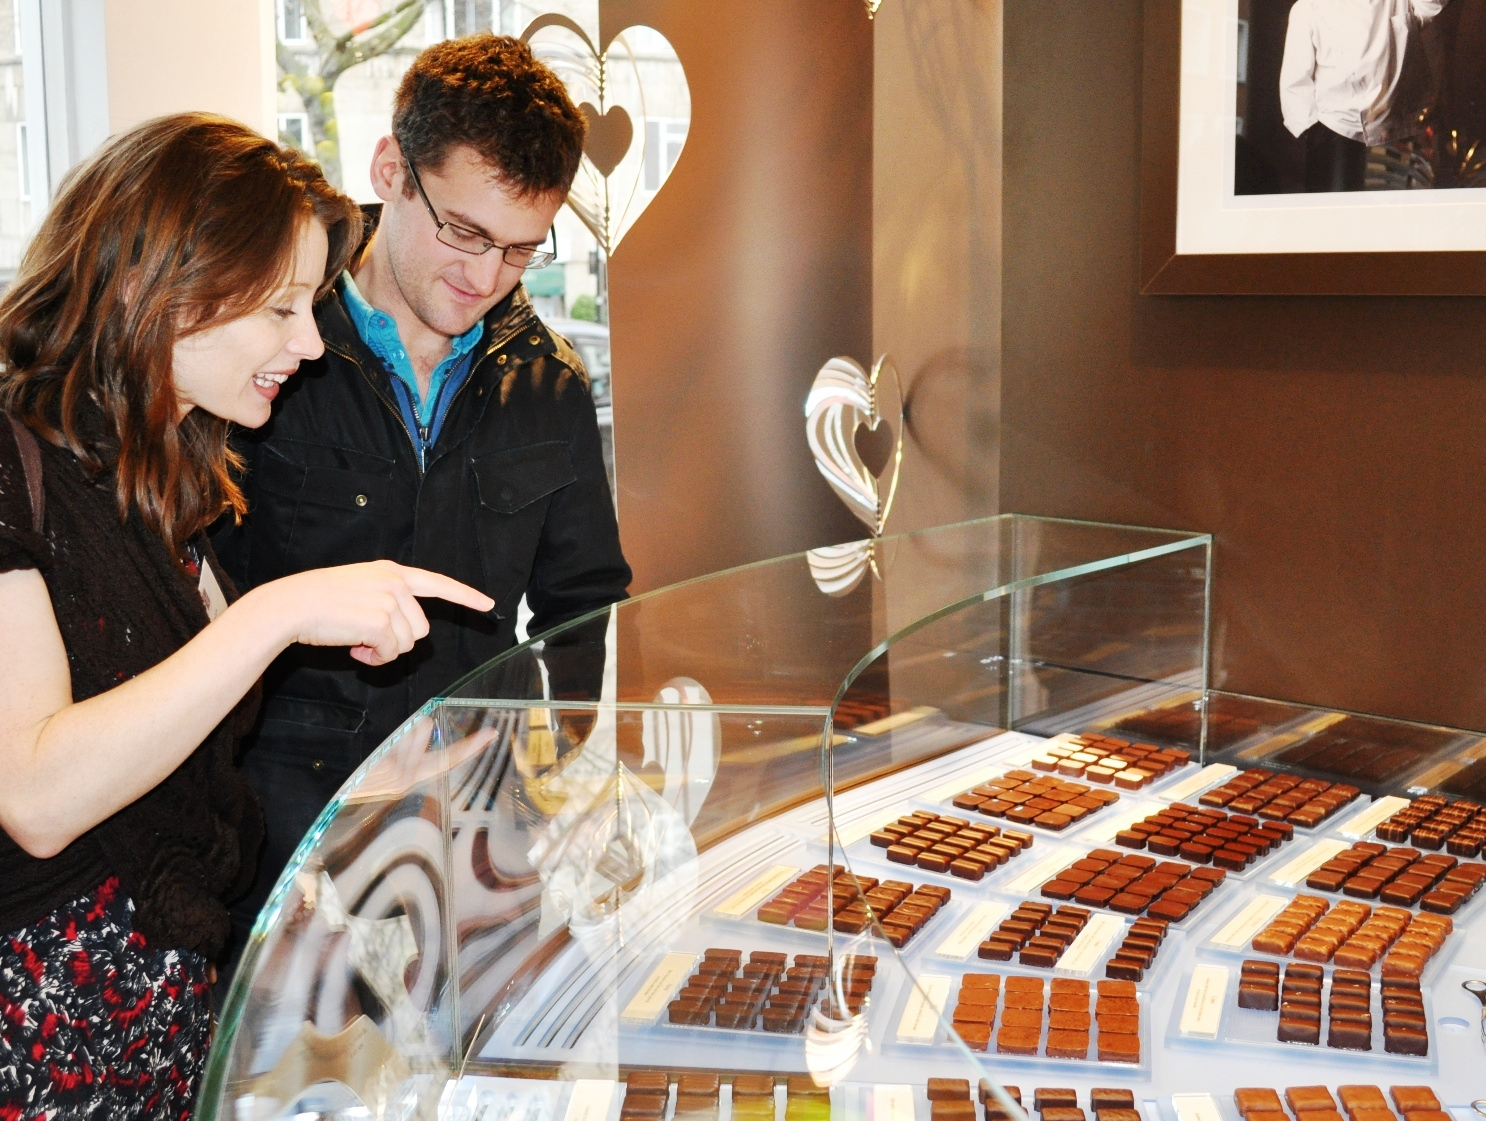 Pierre Herme tour picture - Chelsea Chocolate Tour